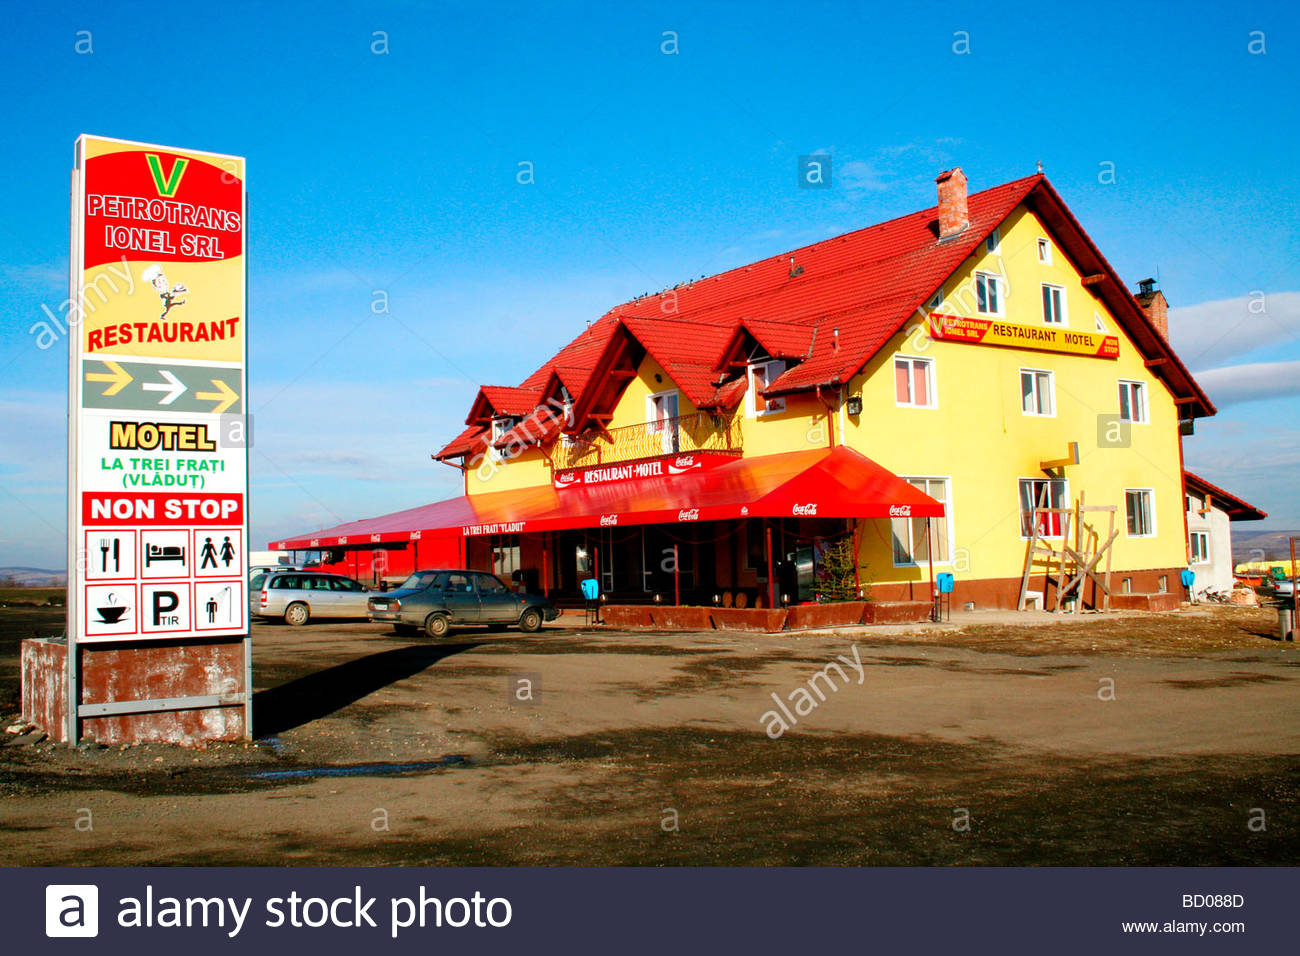 Europe, Romania, one of many who meet Motel along the roads - Stock Image